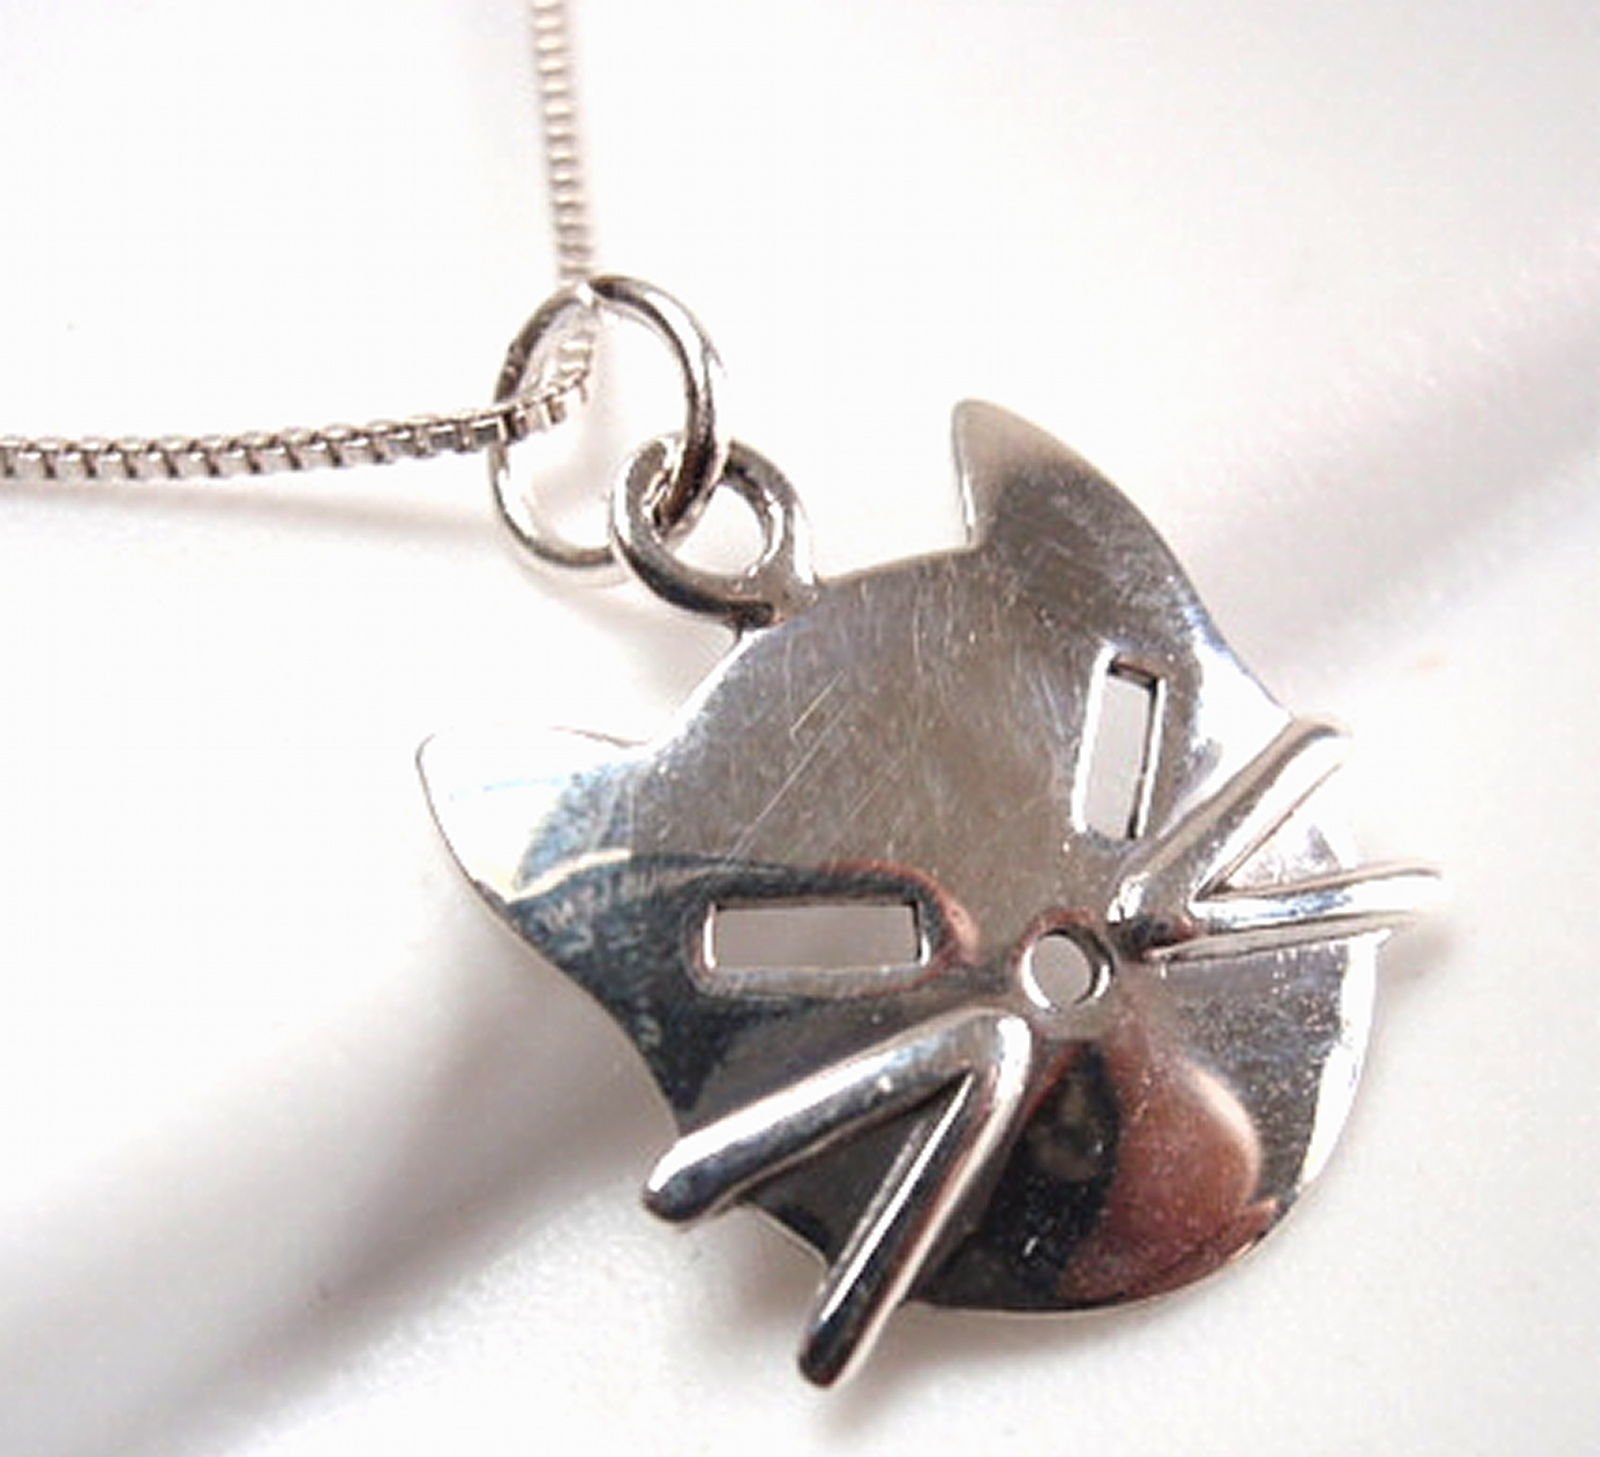 Primary image for Kitty Cat Face Necklace 925 Sterling Silver Corona Sun Jewelry kitten feline